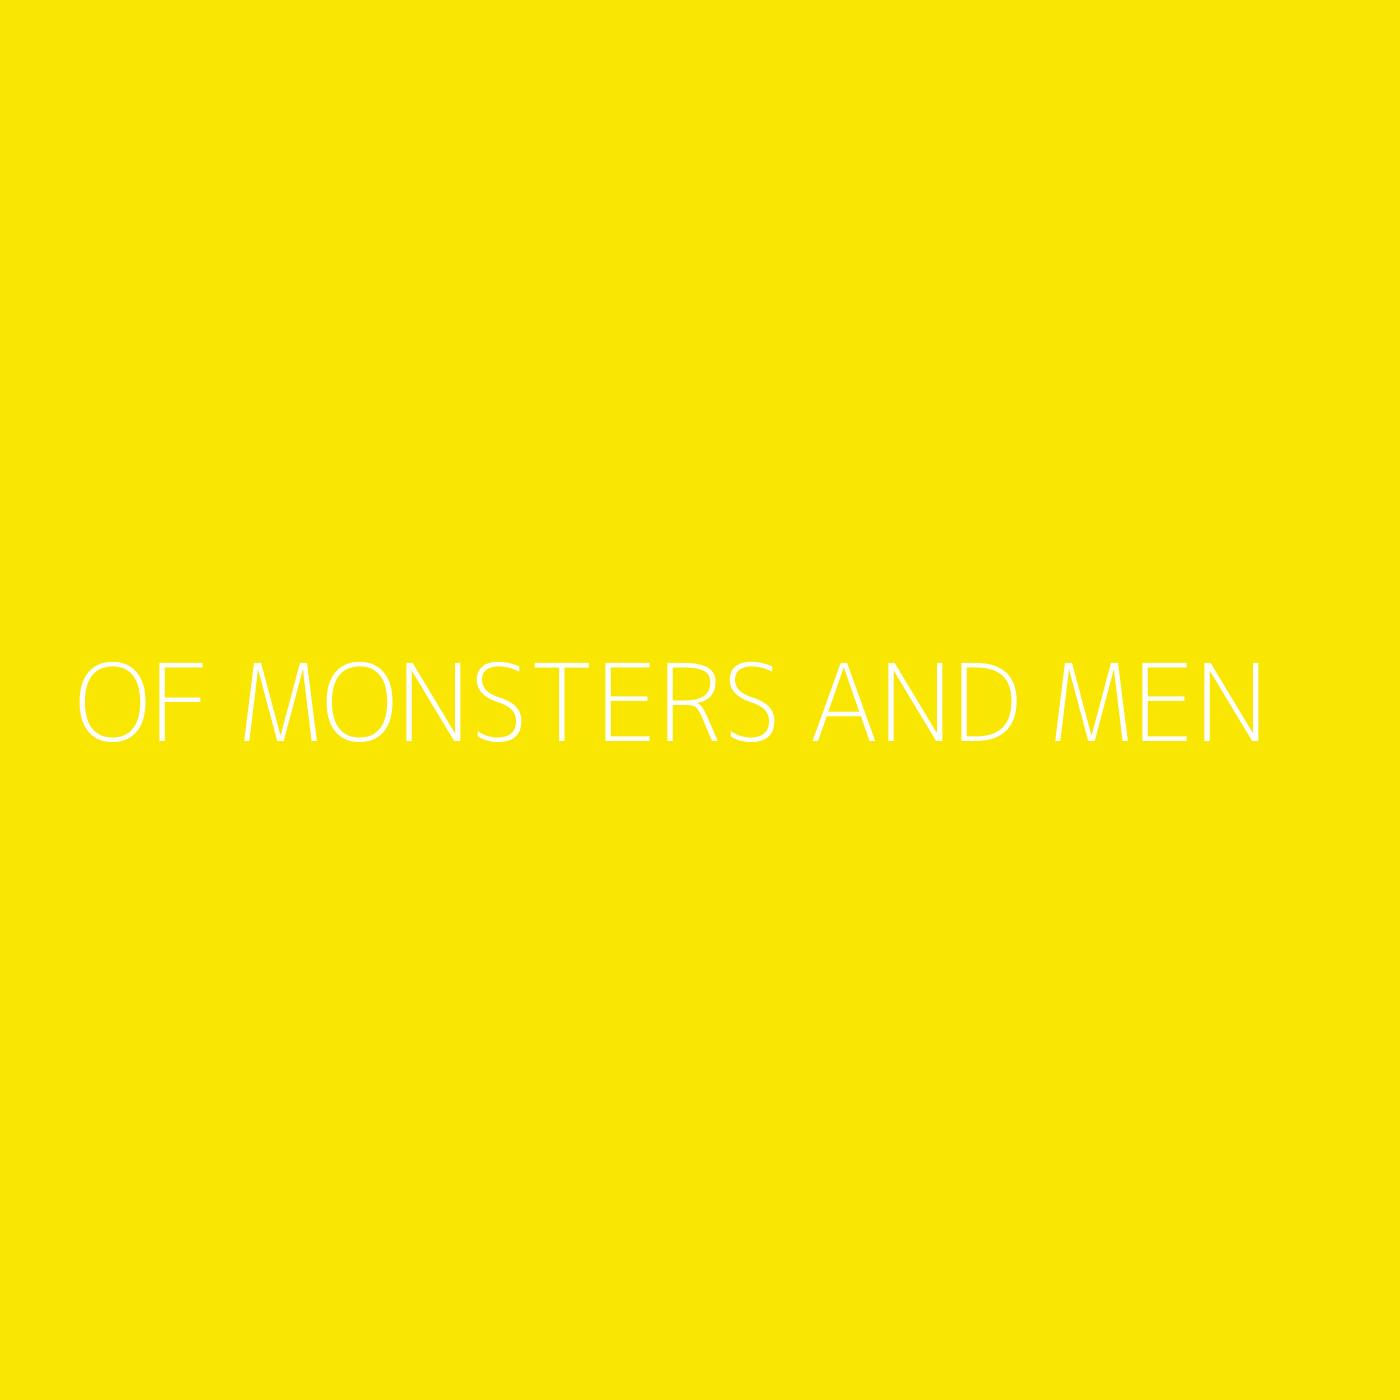 Of Monsters and Men Playlist Artwork